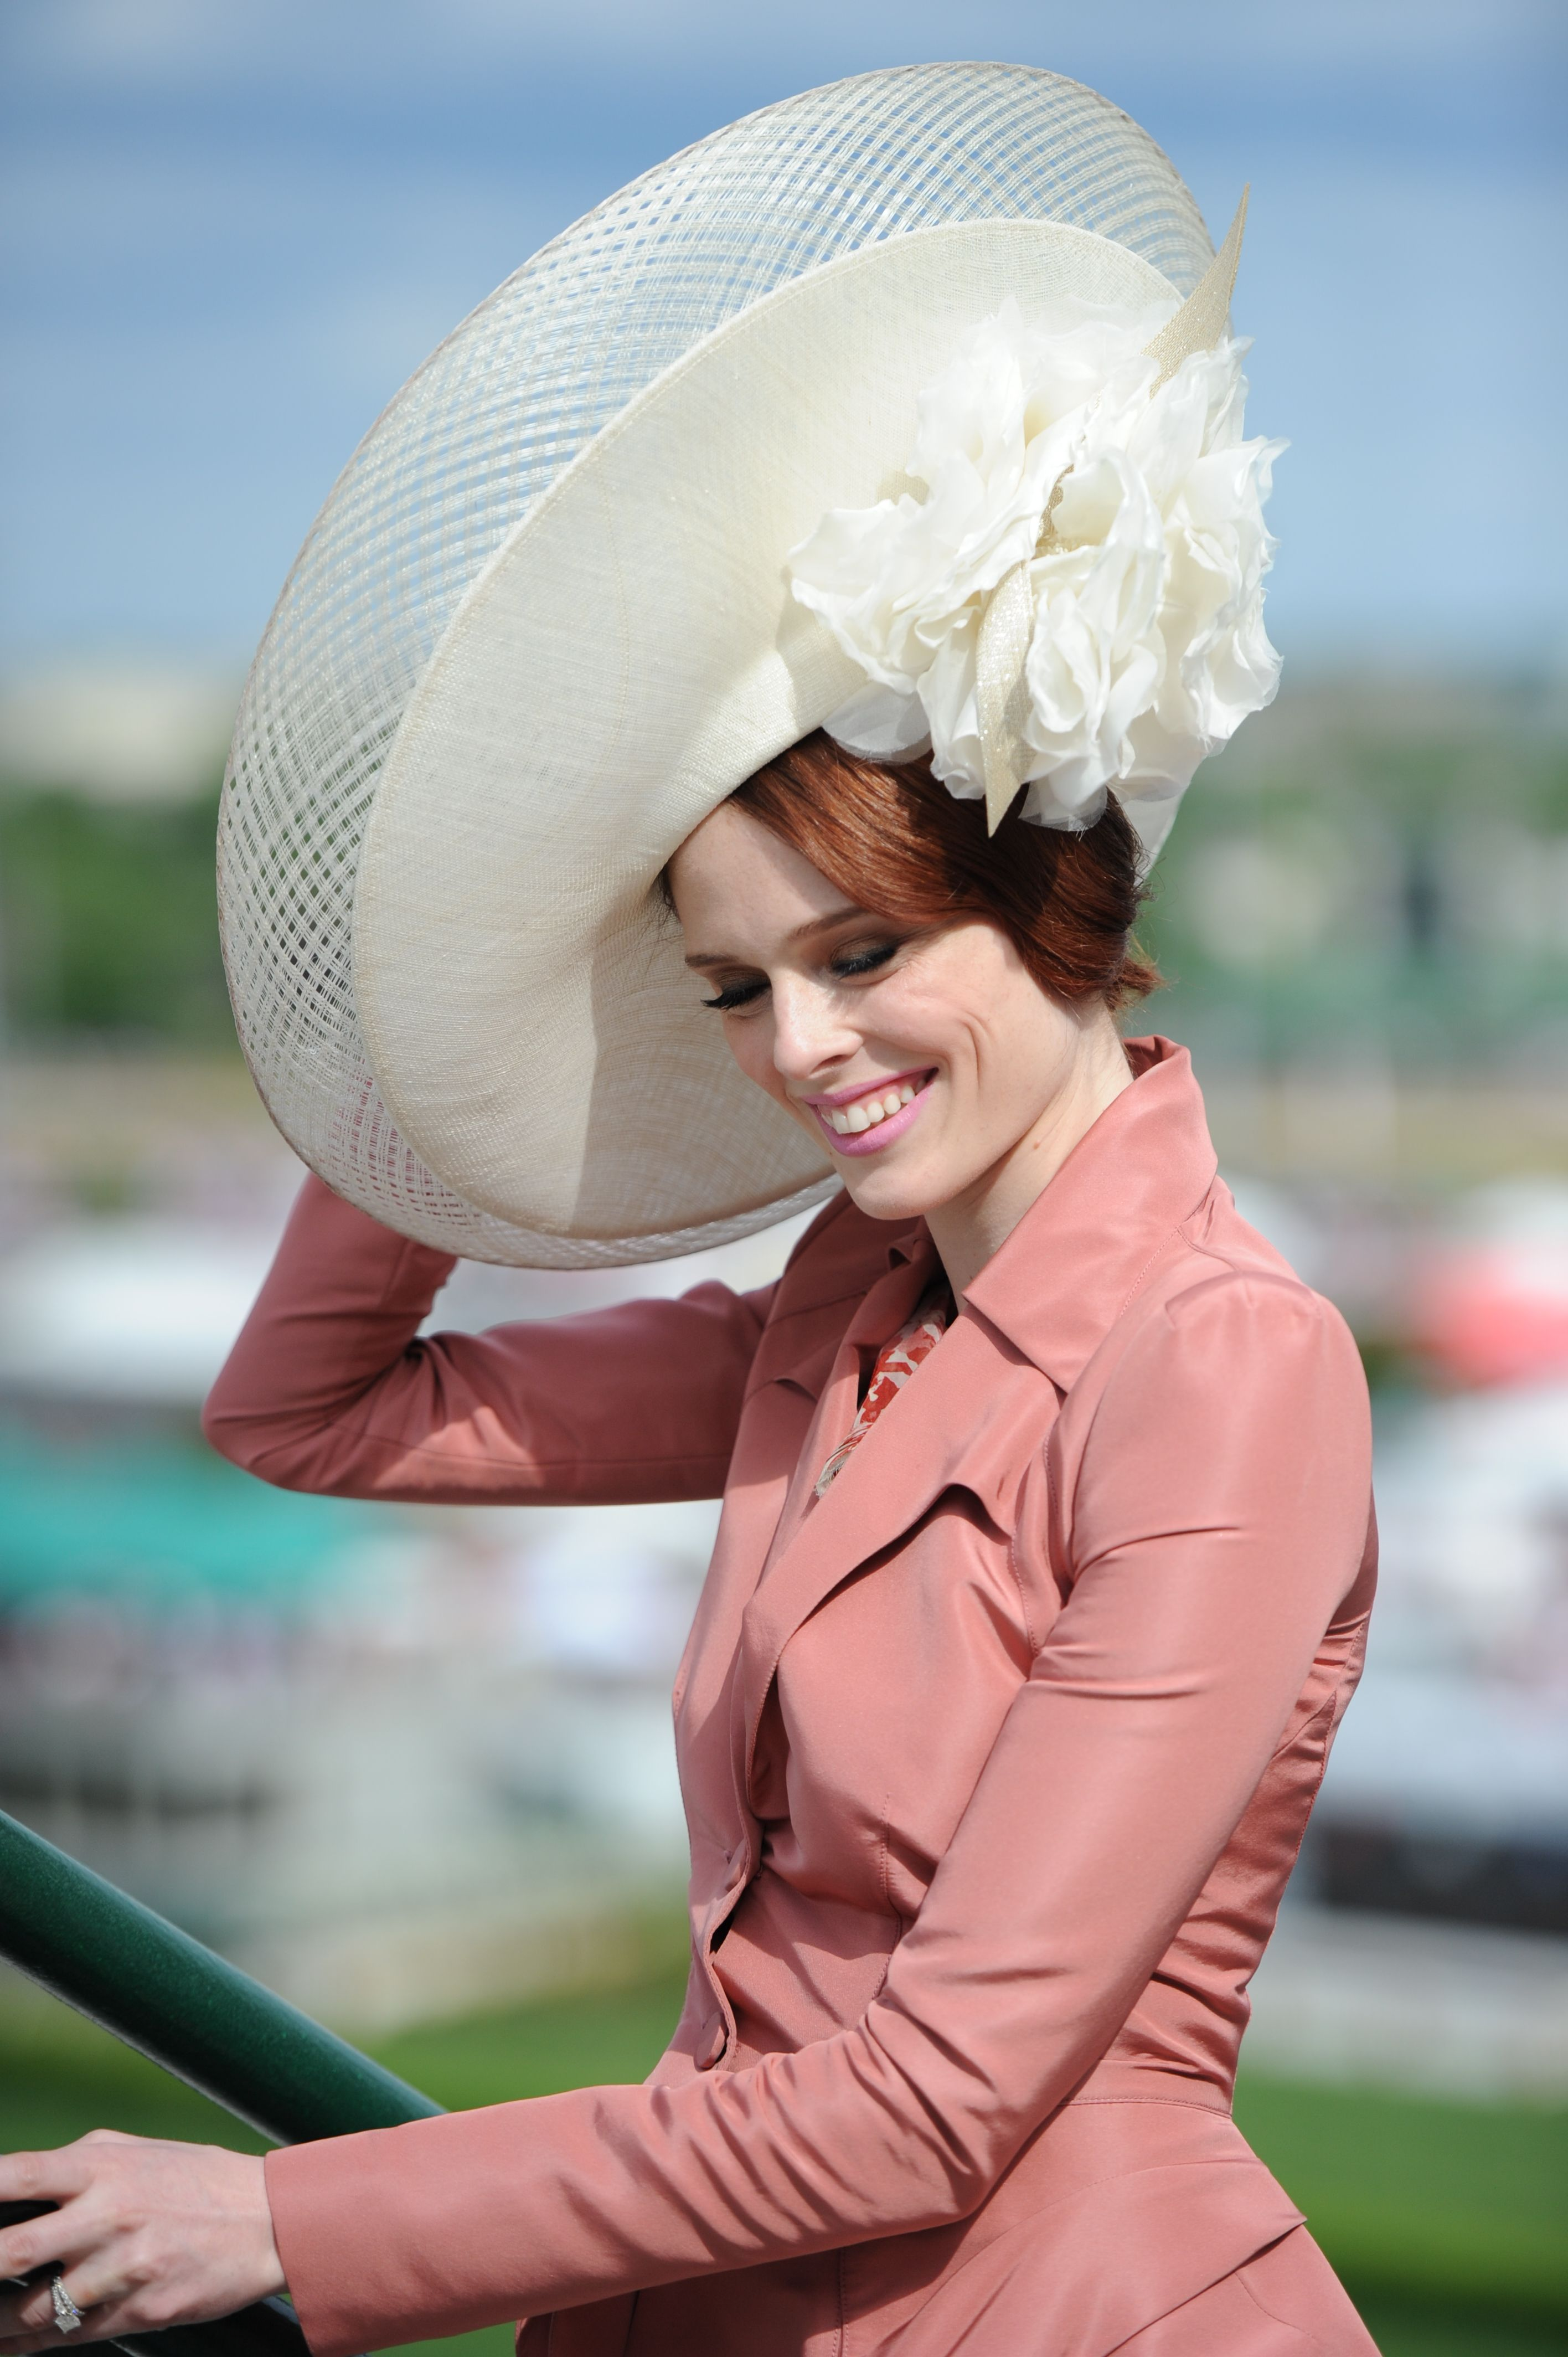 af0da9edccdab Kentucky Derby fashion is FABULOUS! Contemporary In a Choosing One of the  Proper Ladies Kentucky Derby Hats ...